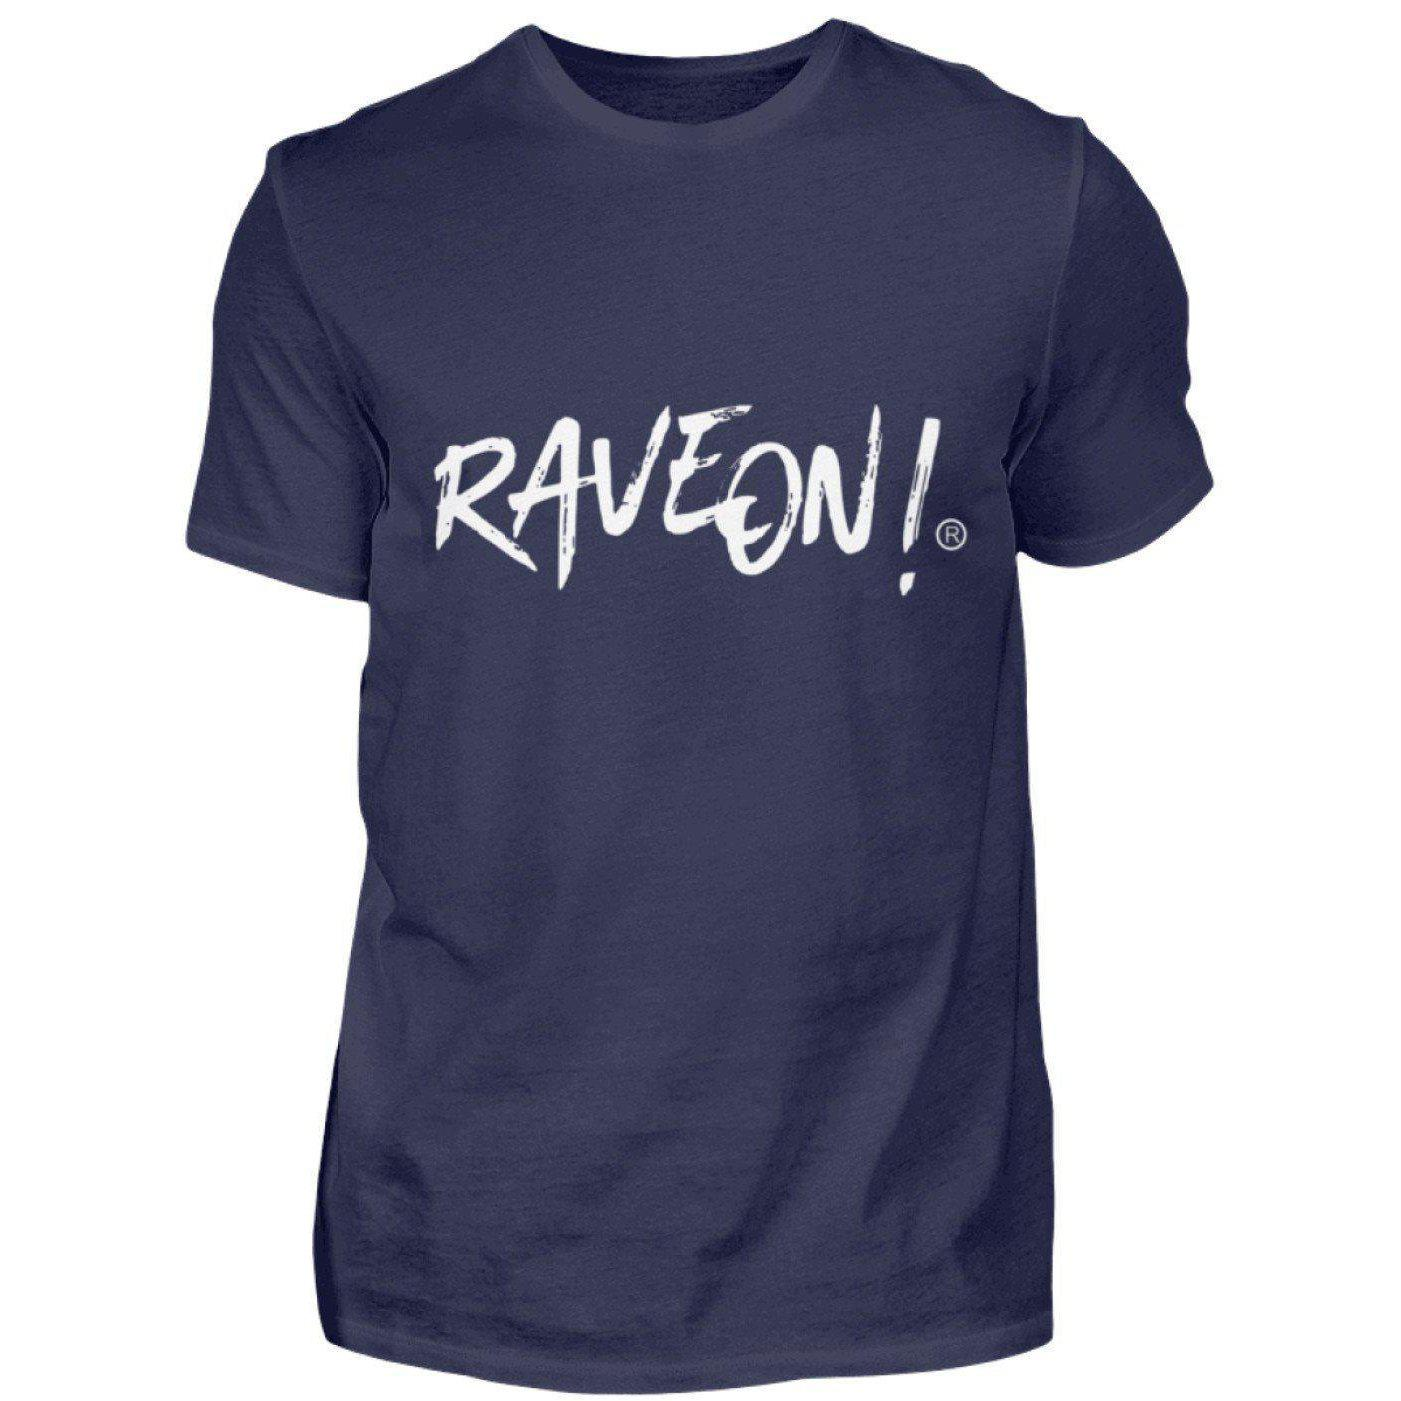 Rave On!® Side Black Collection - Herren Shirt Herren Basic T-Shirt Dunkel-Blau / S - Rave On!® der Club & Techno Szene Shop für Coole Junge Mode Streetwear Style & Fashion Outfits + Sexy Festival 420 Stuff